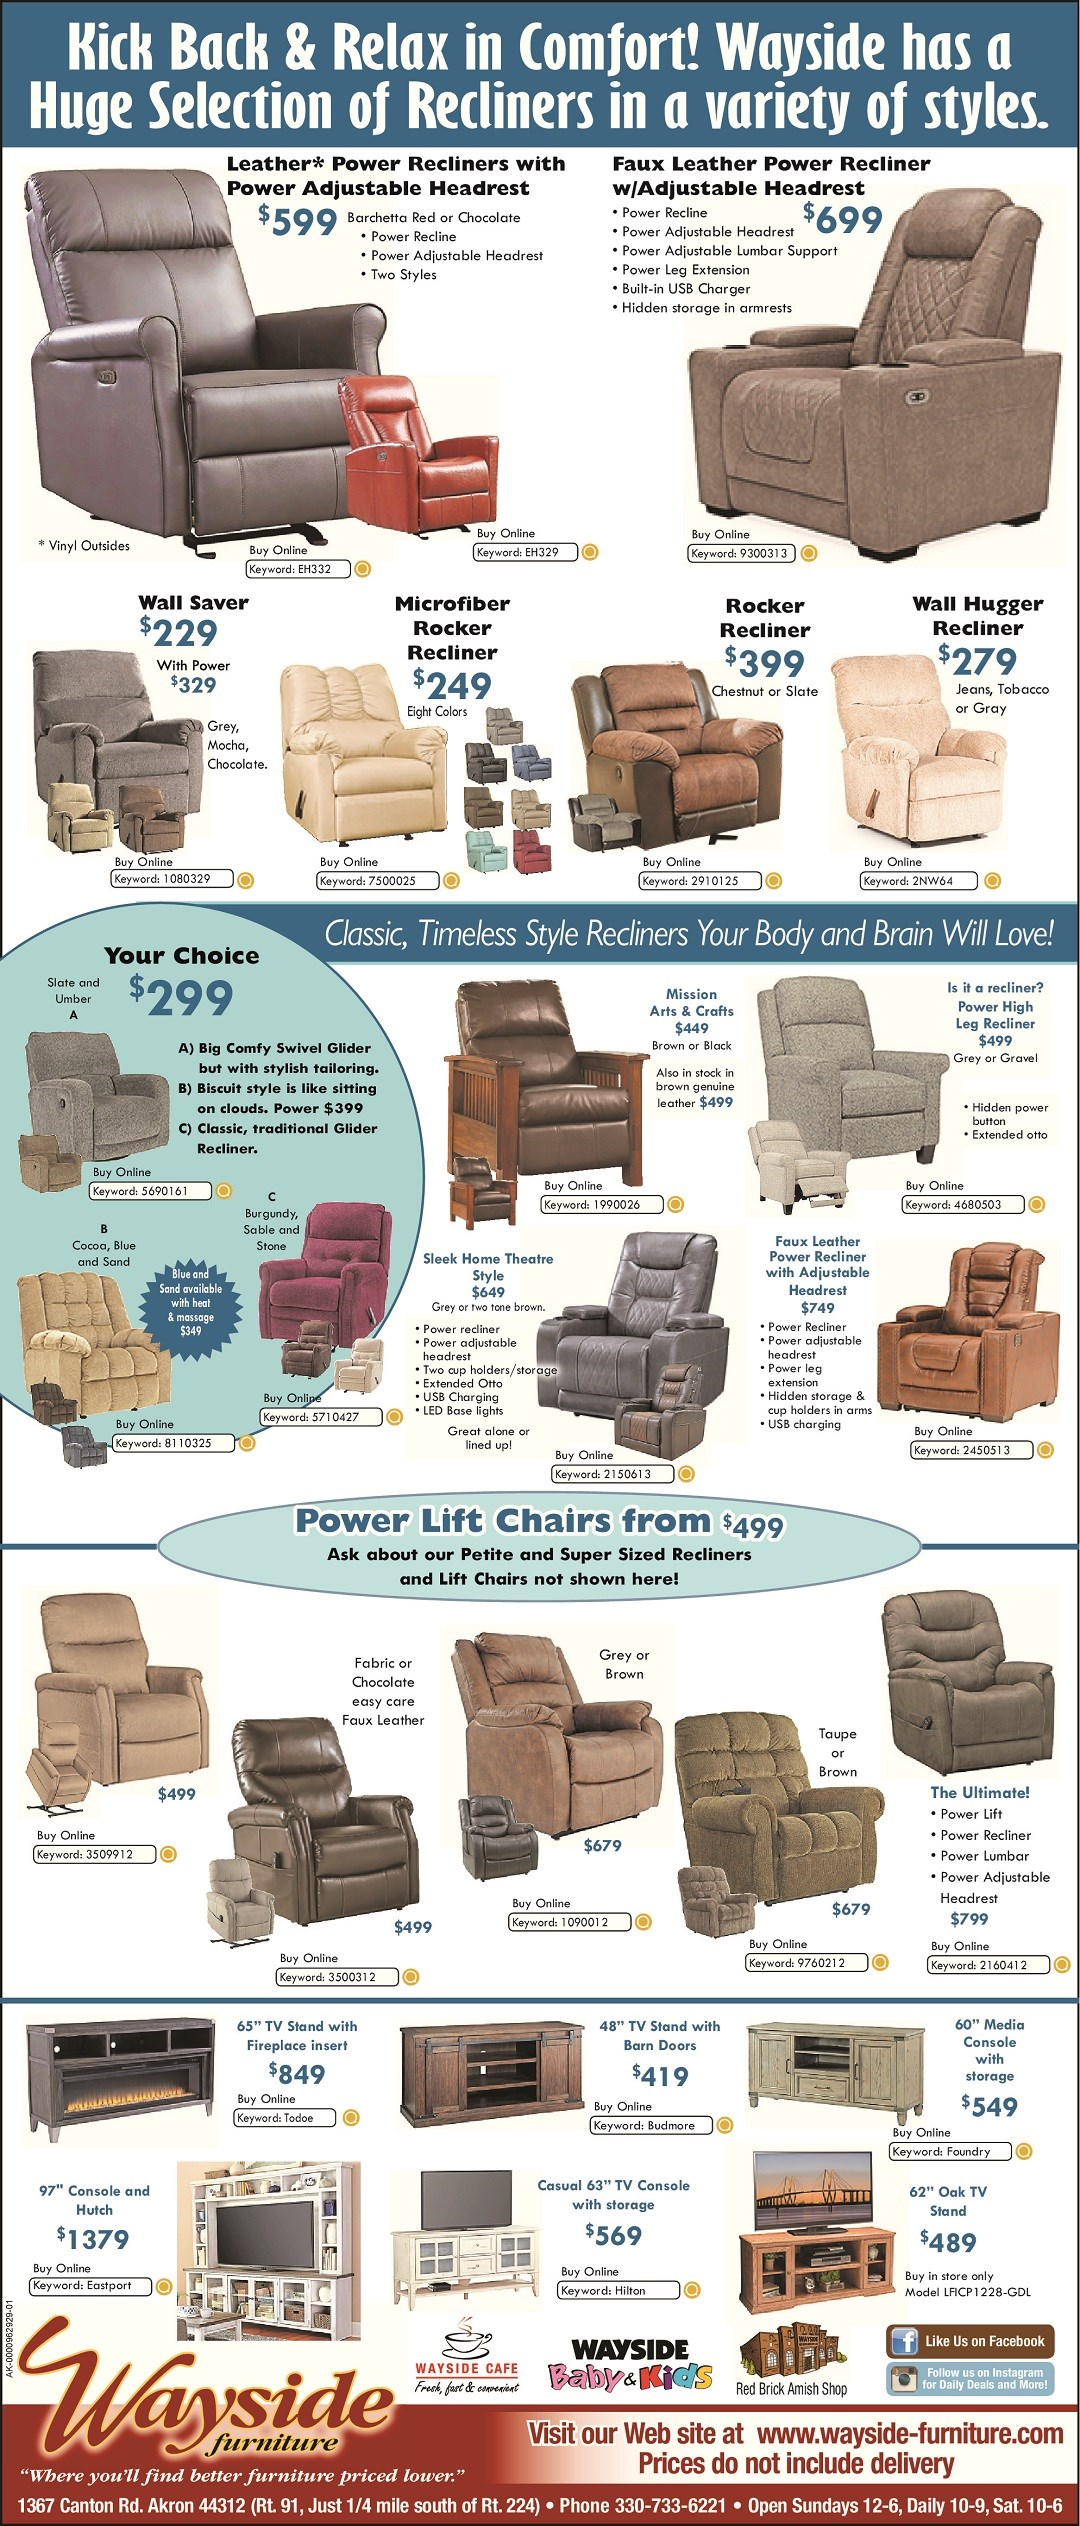 Wayside has a huge selection of recliners in a variety of styles in stock